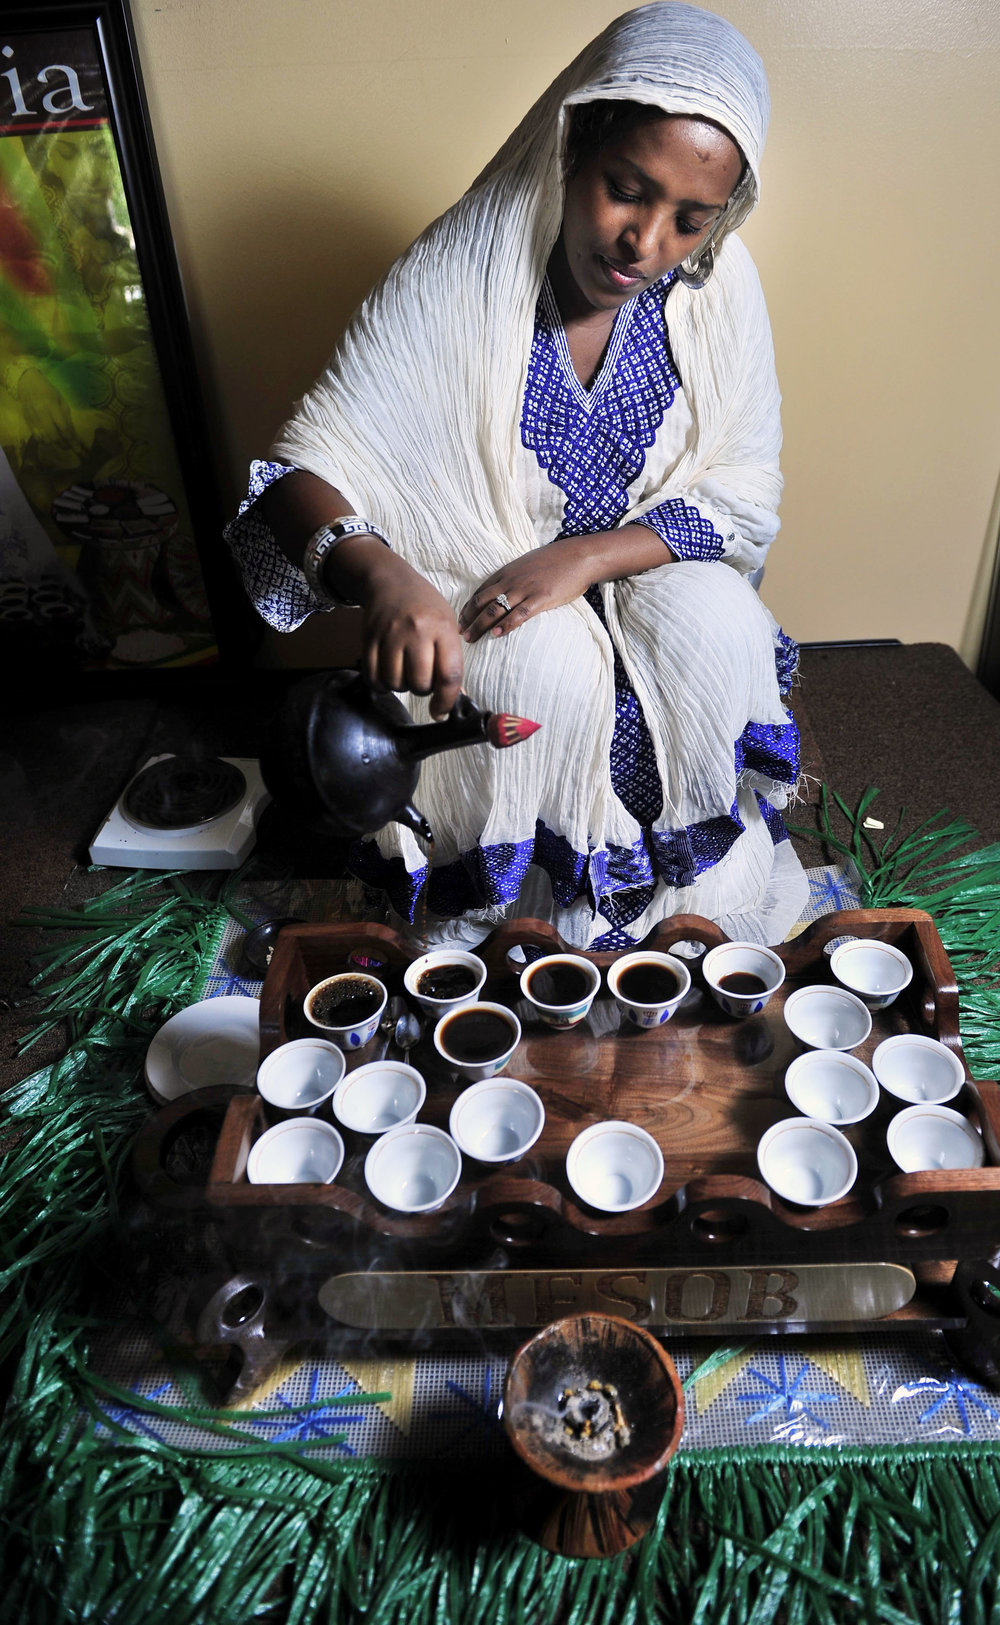 Hiwot Shafi pours out ethiopian coffee in a traditional coffee ceremony at Mesob Ethiopian Restaurant in Nashville, Tenn.